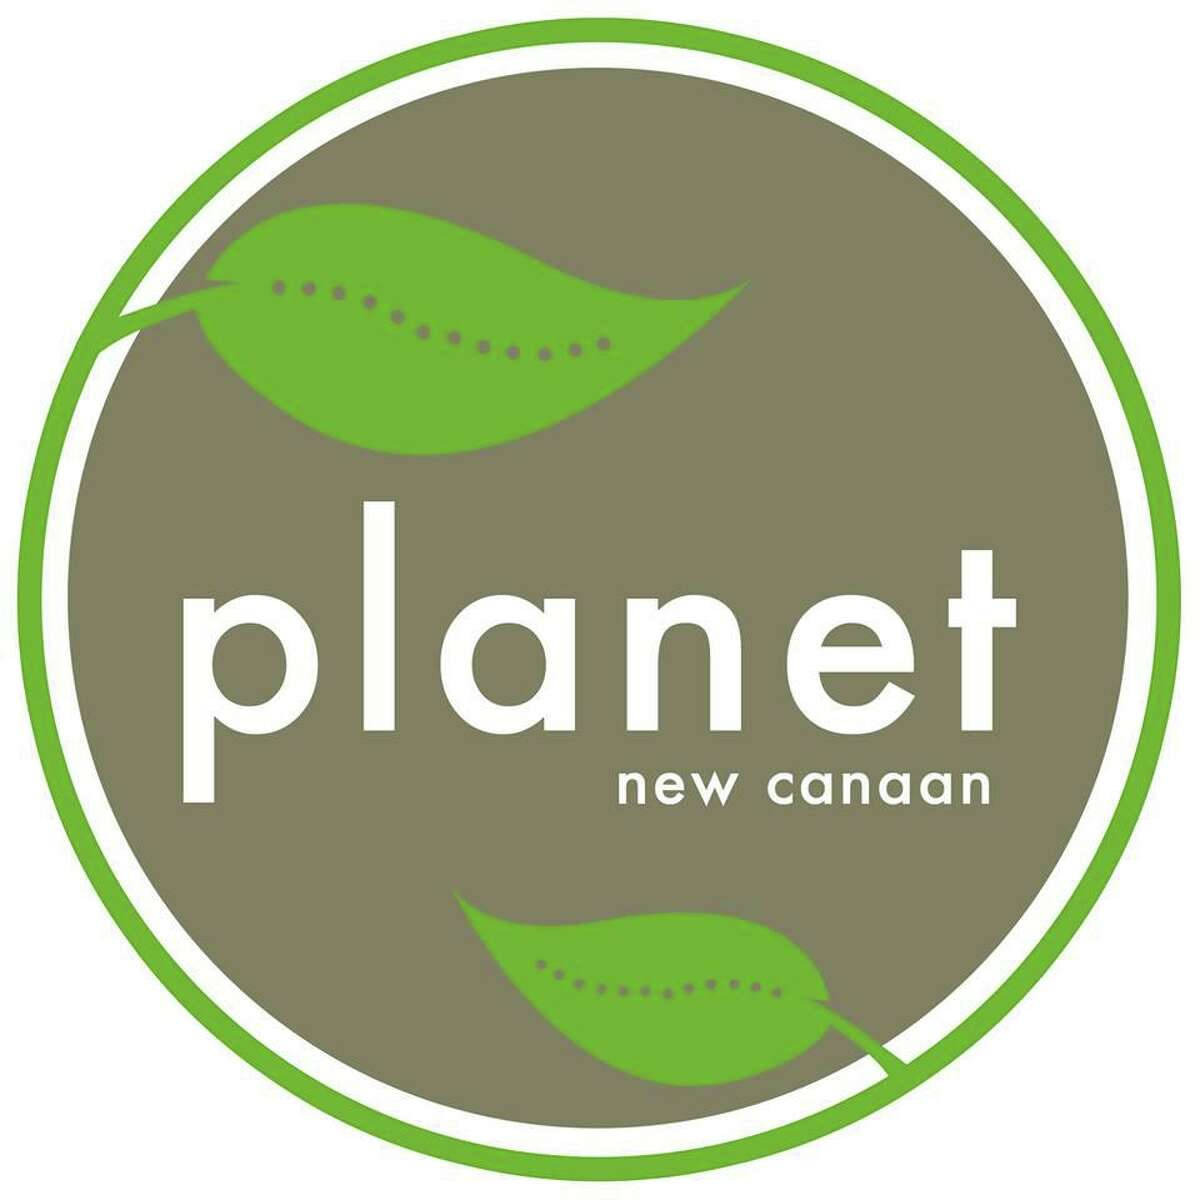 Planet New Canaan logo from their Facebook page.